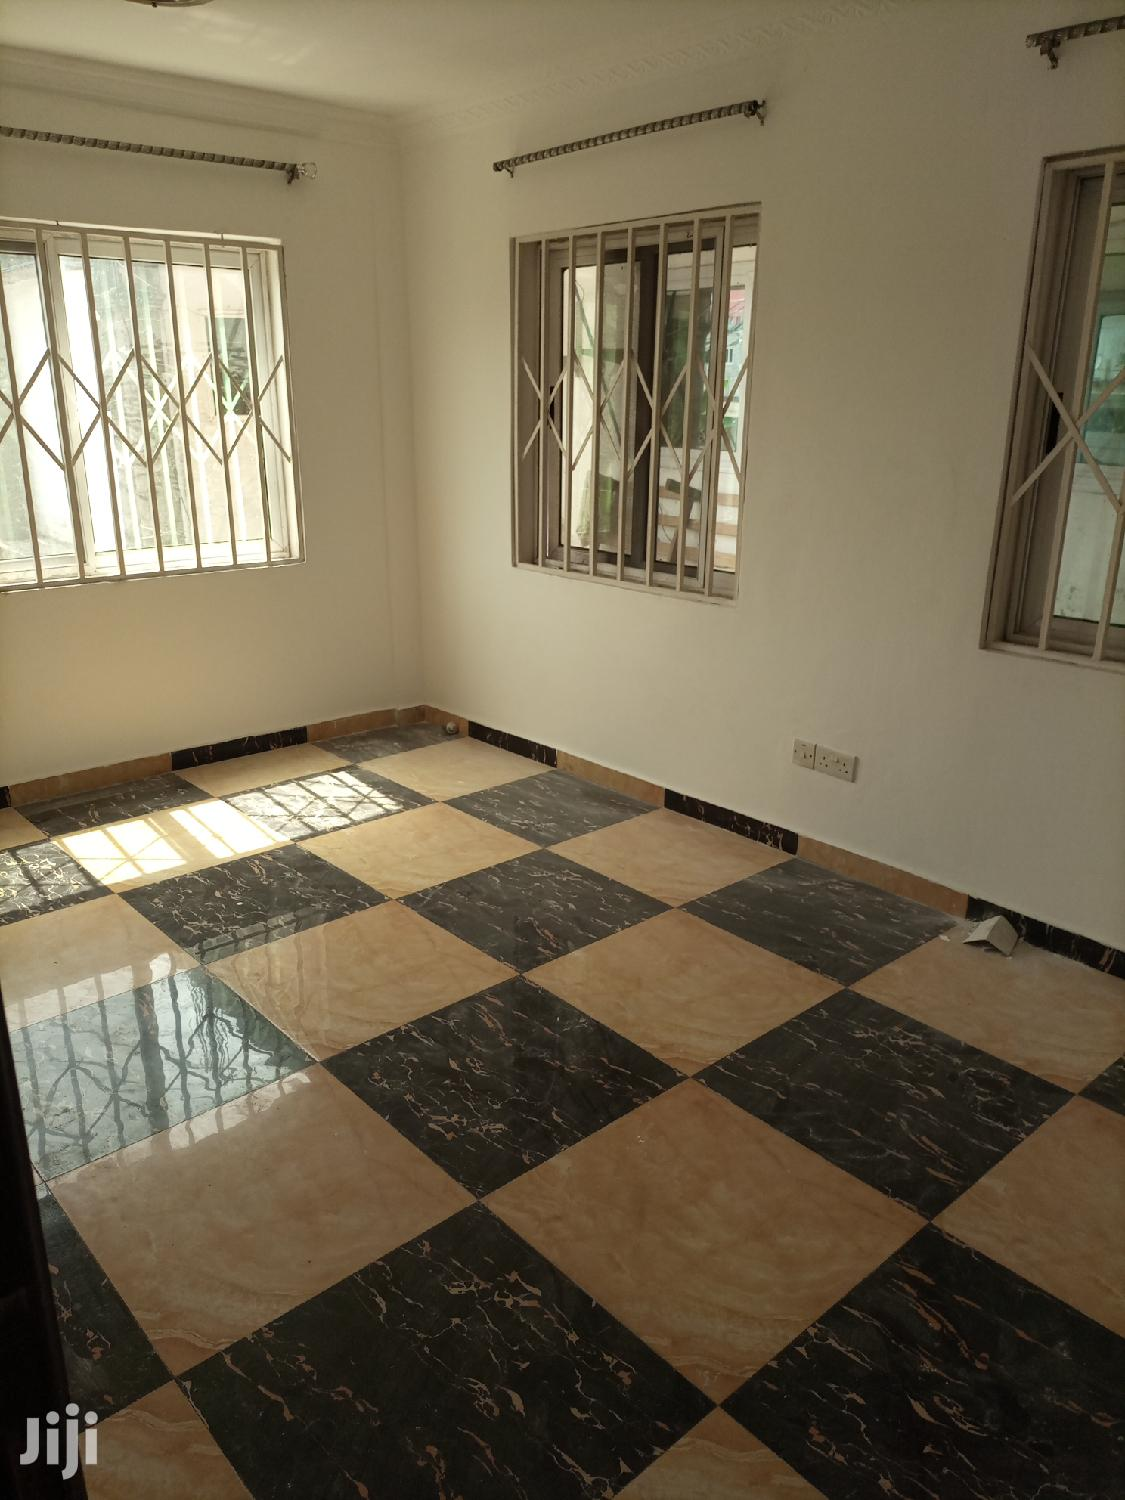 2bedroom Flat | Houses & Apartments For Rent for sale in Labadi-Aborm, Greater Accra, Ghana